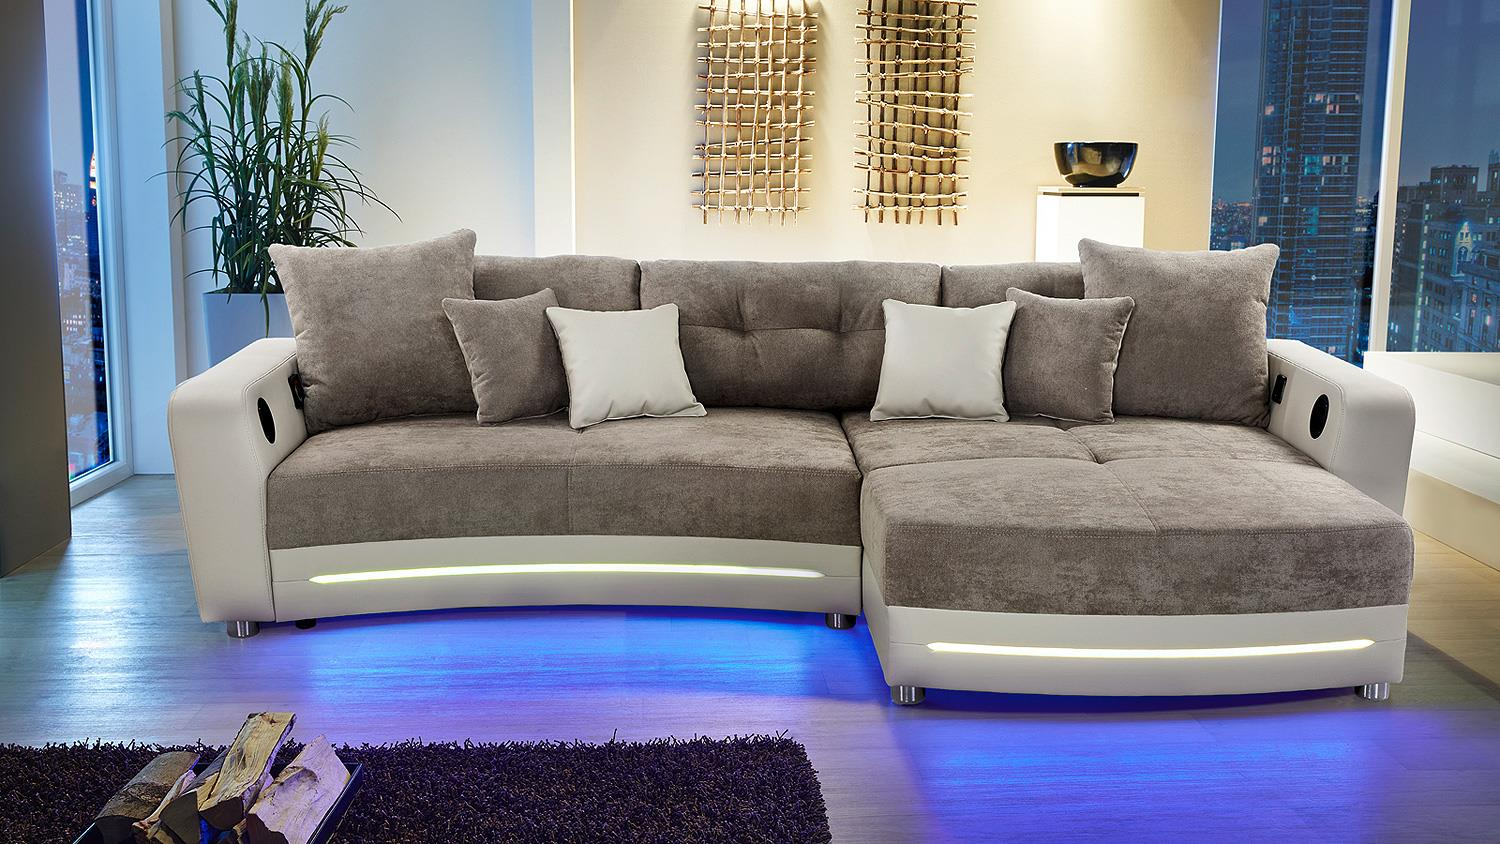 wohnlandschaft laredo sofa in greige mit led und soundsystem. Black Bedroom Furniture Sets. Home Design Ideas